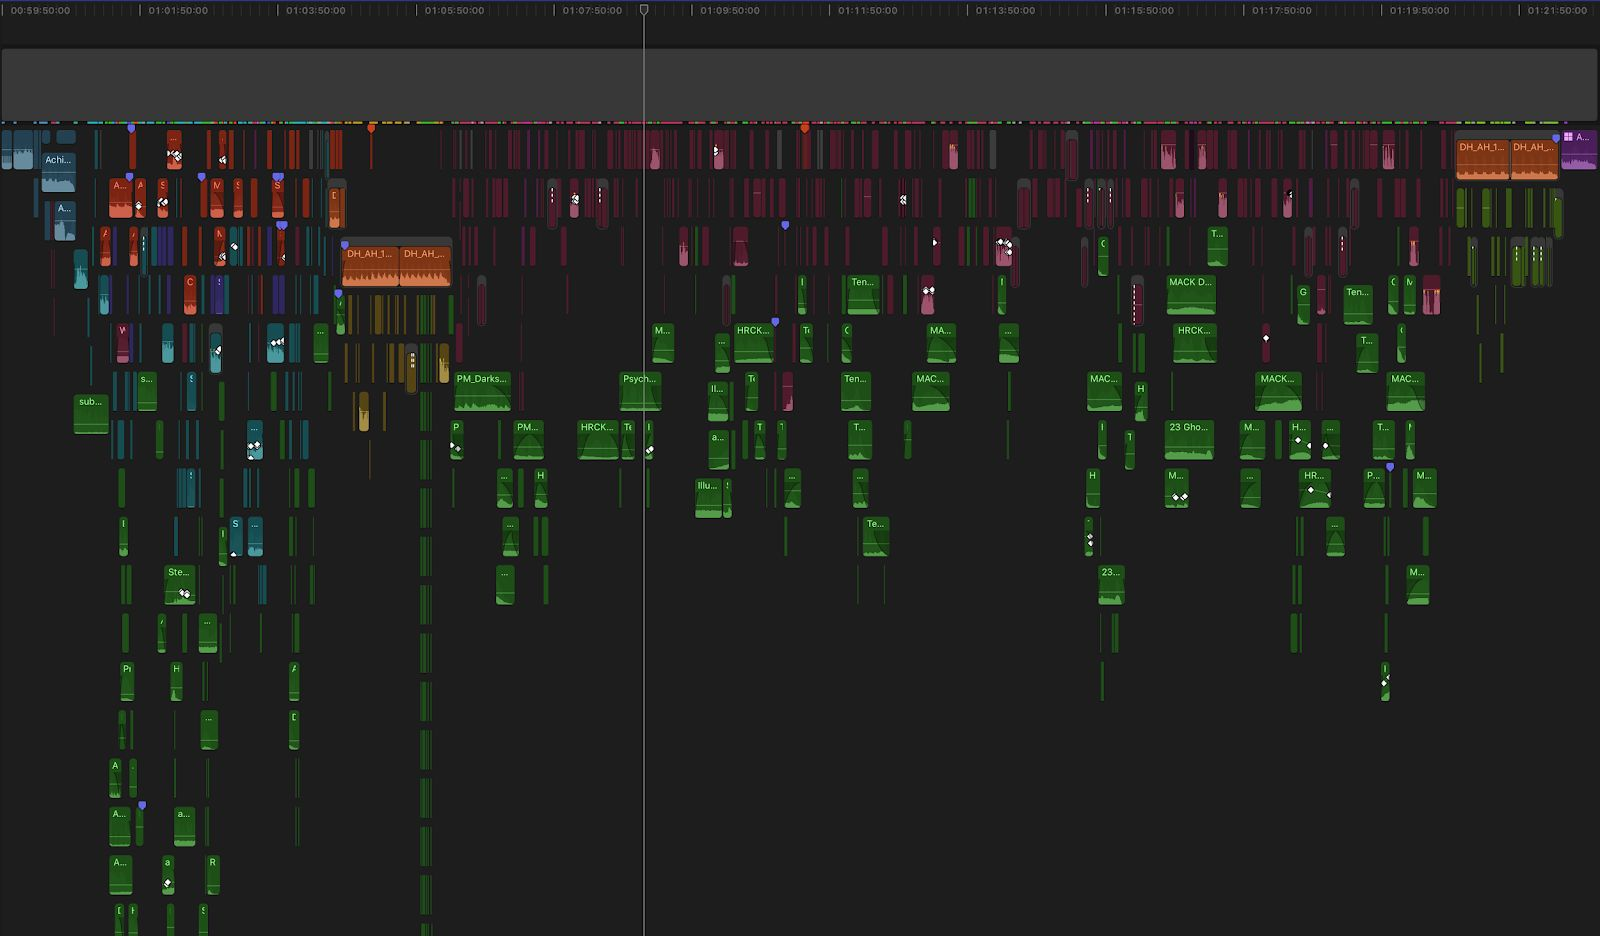 FCPX WORKFLOw HAUNTER Page 40 Image 0001